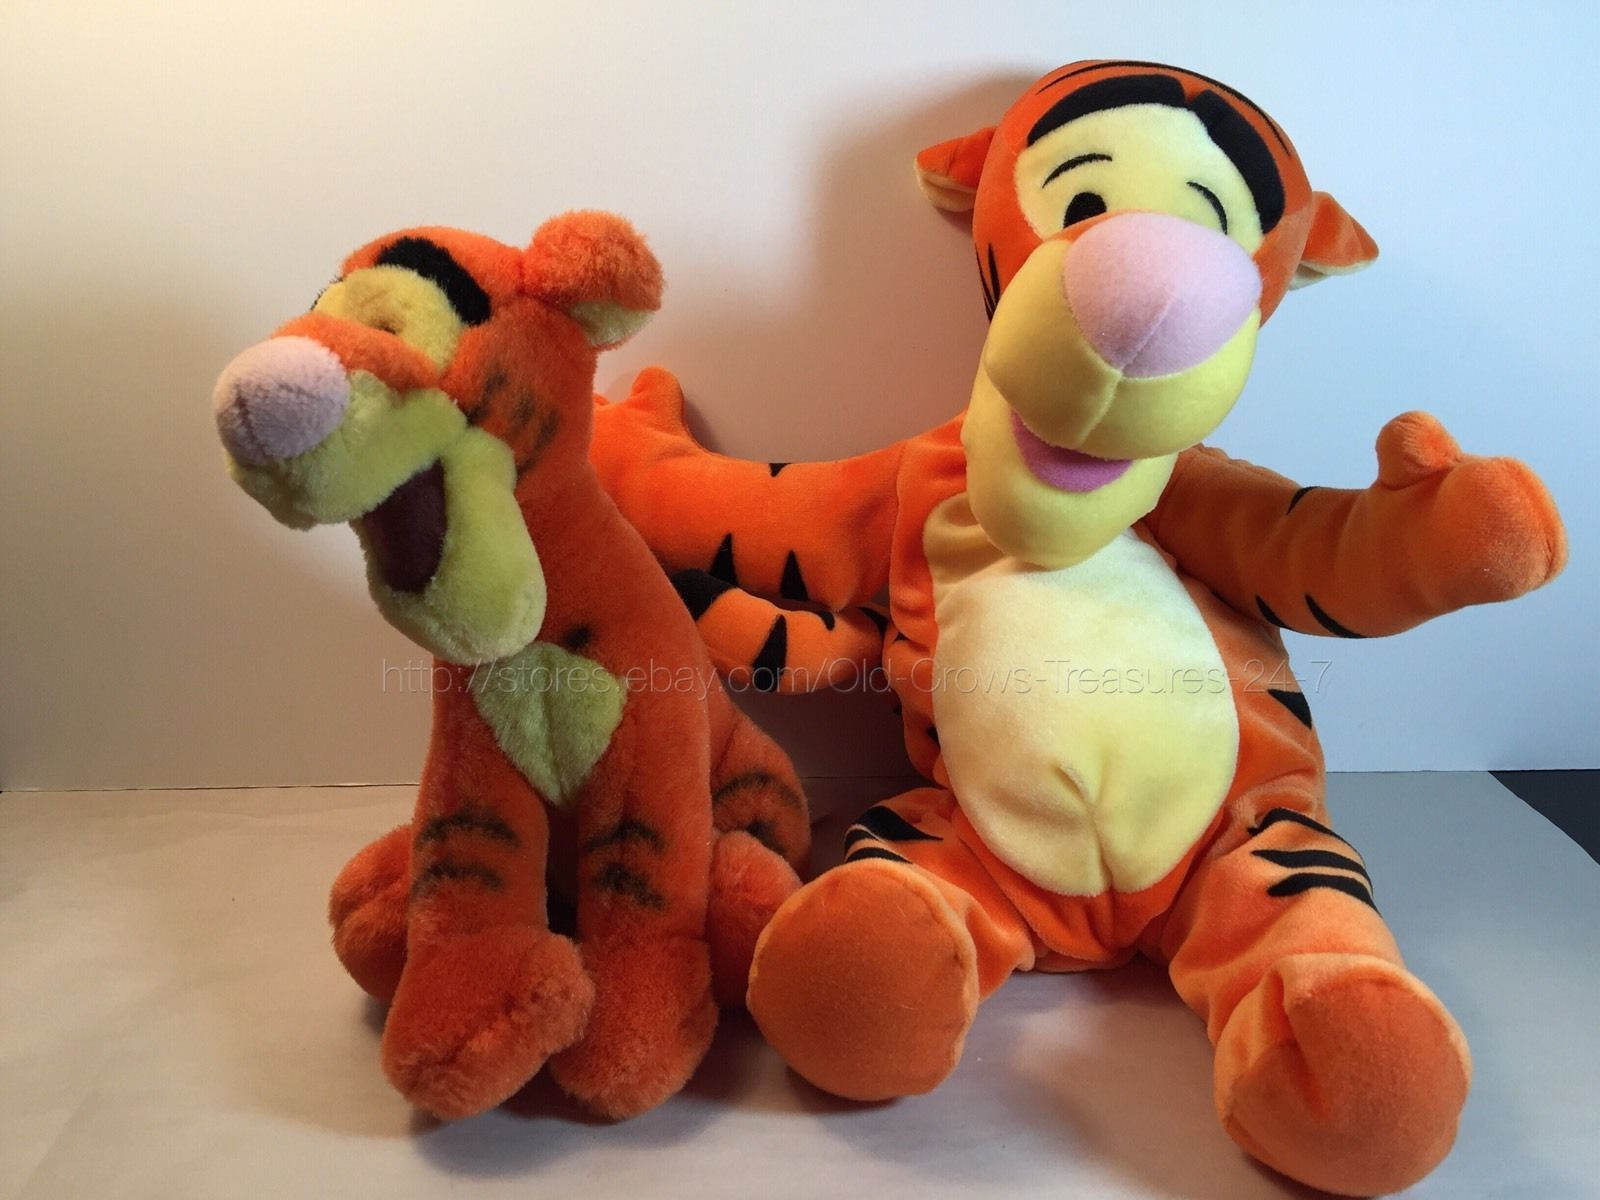 2 Disney Winnie The Pooh Tigger Plush Stuffed Animals Collectibles